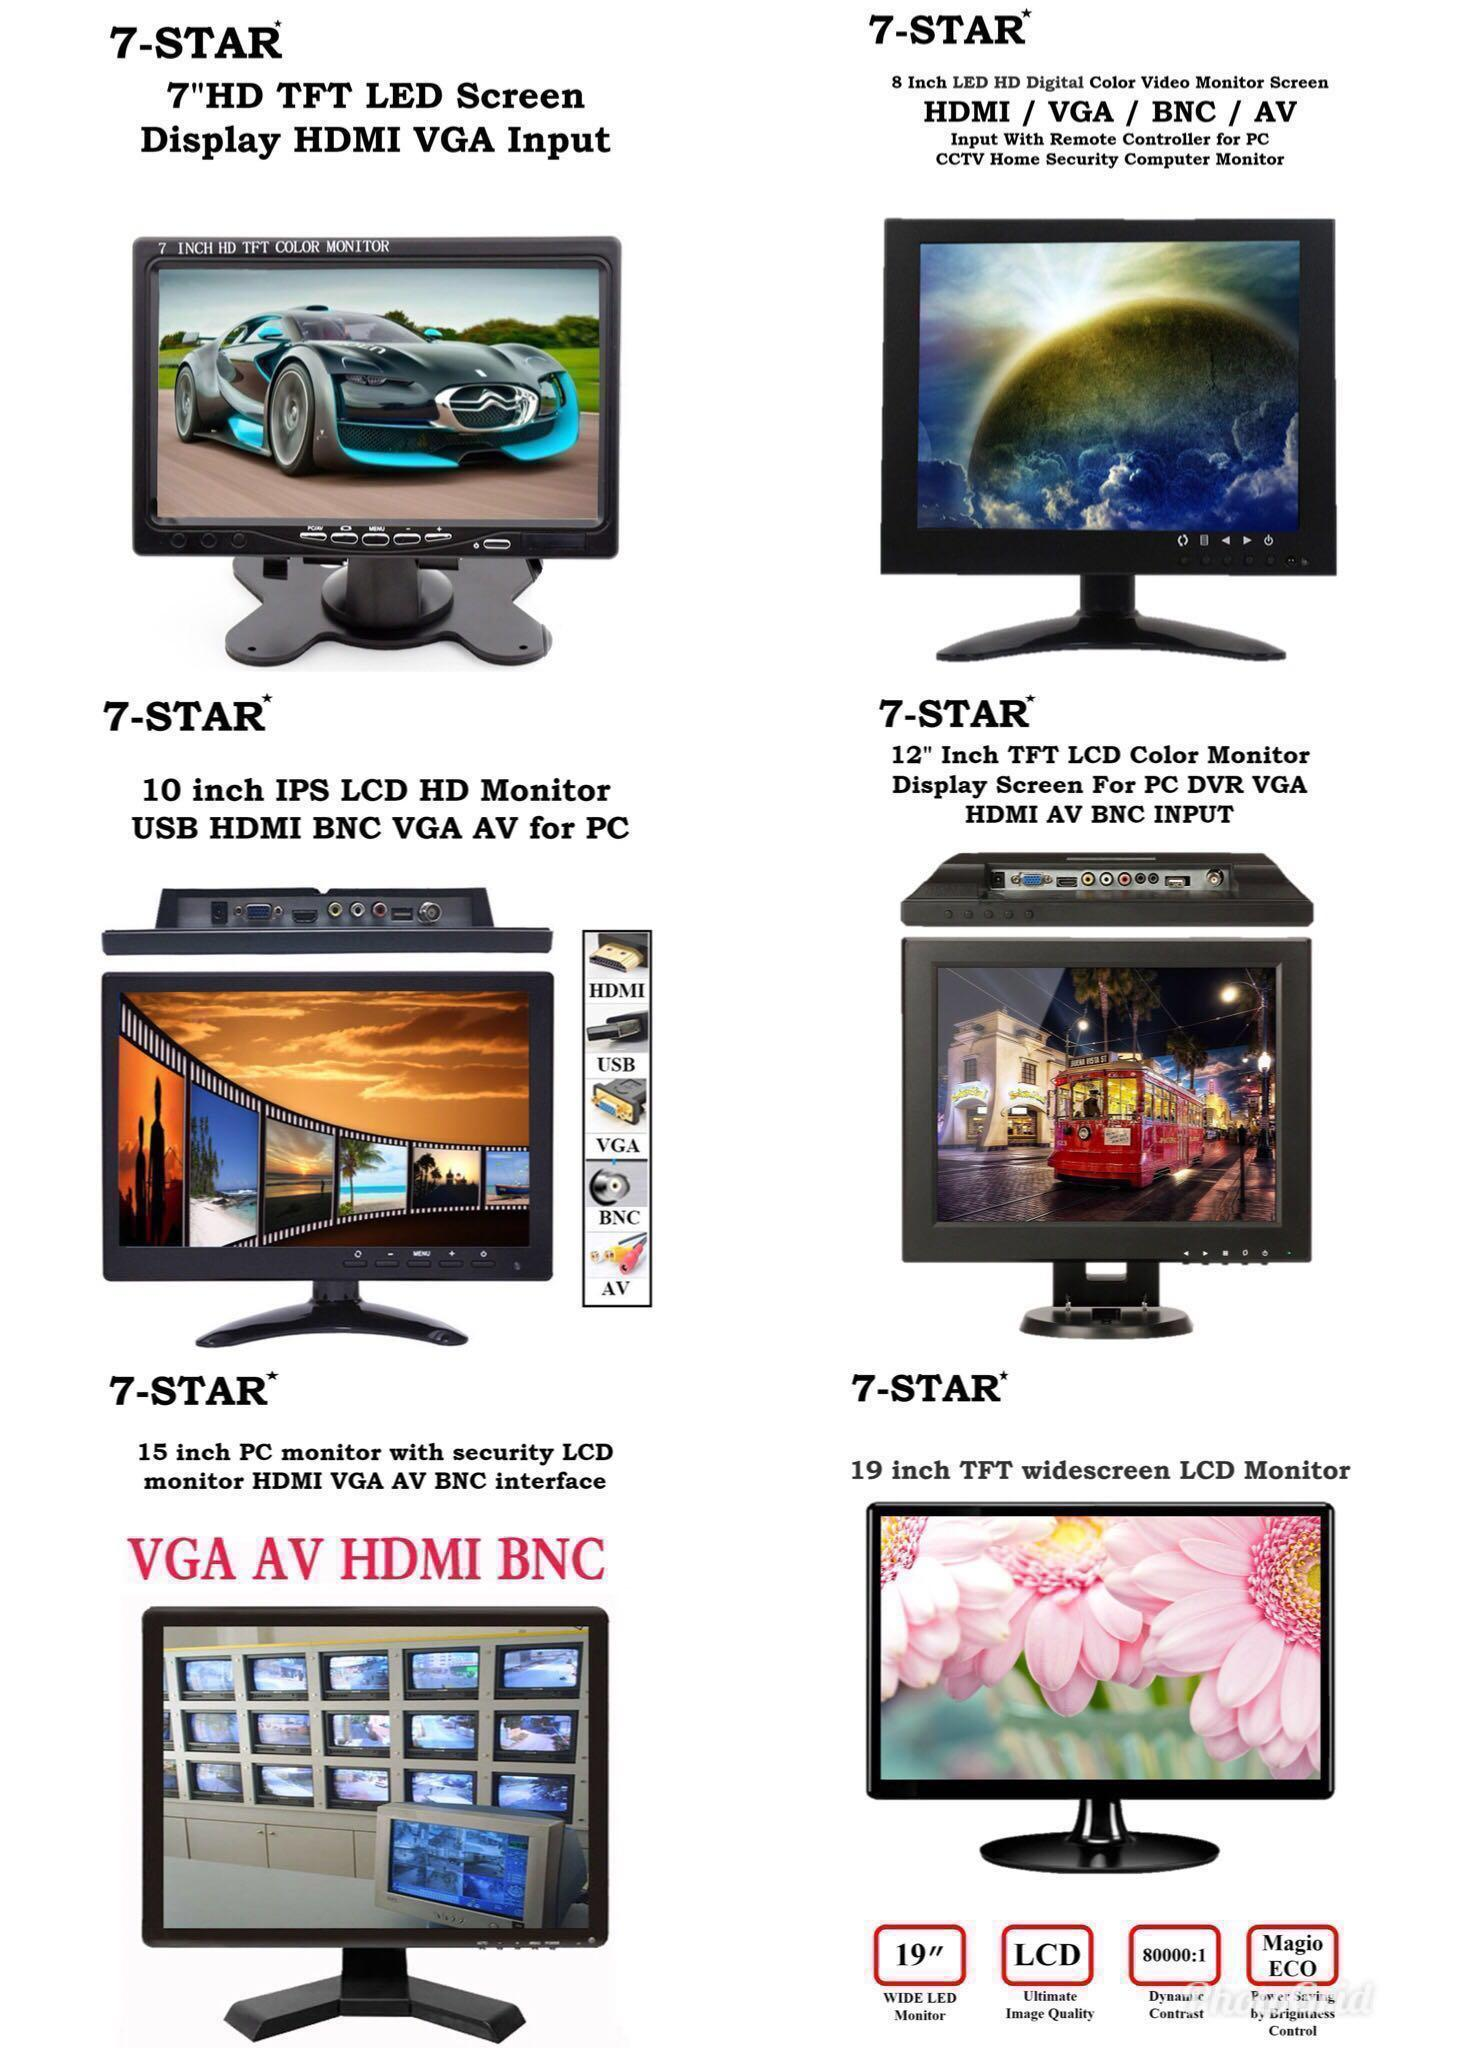 STB and Other Video Equipment 14 Inch LCD Security CCTV Monitor 1024x768 4:3 Resolution HD Color TFT LCD Display Screen with VGA//HDMI//AV//BNC//MIC USB Ports for Surveillance Camera Built-in Speaker